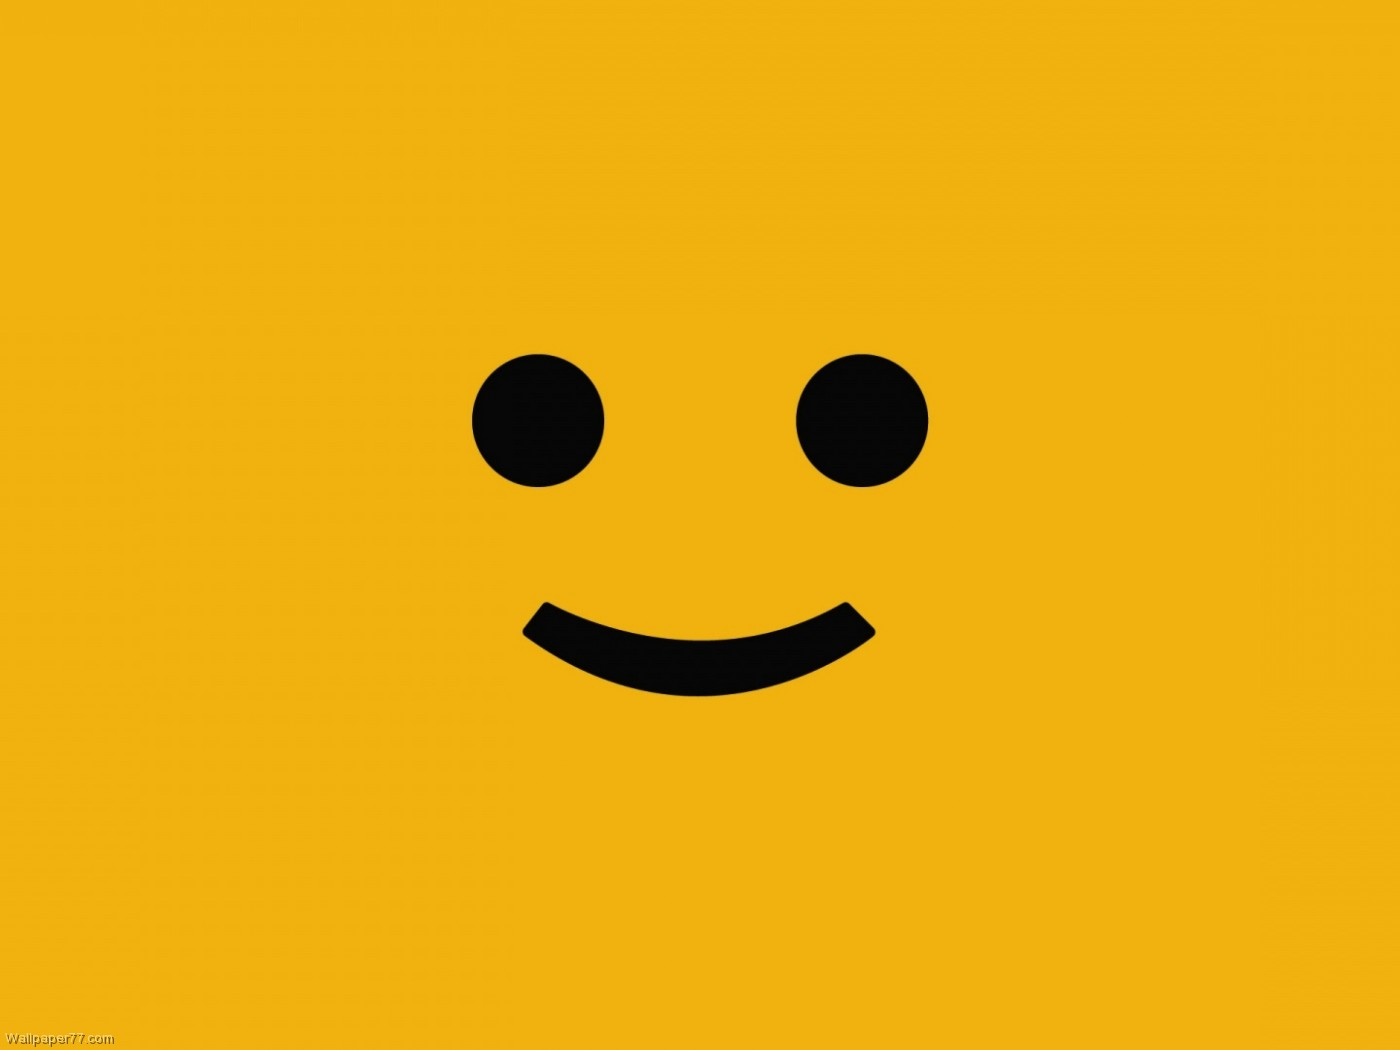 Wallpapers Photos Images: Funny Smiley Face Pictures |Funny Smiley Faces Wallpaper